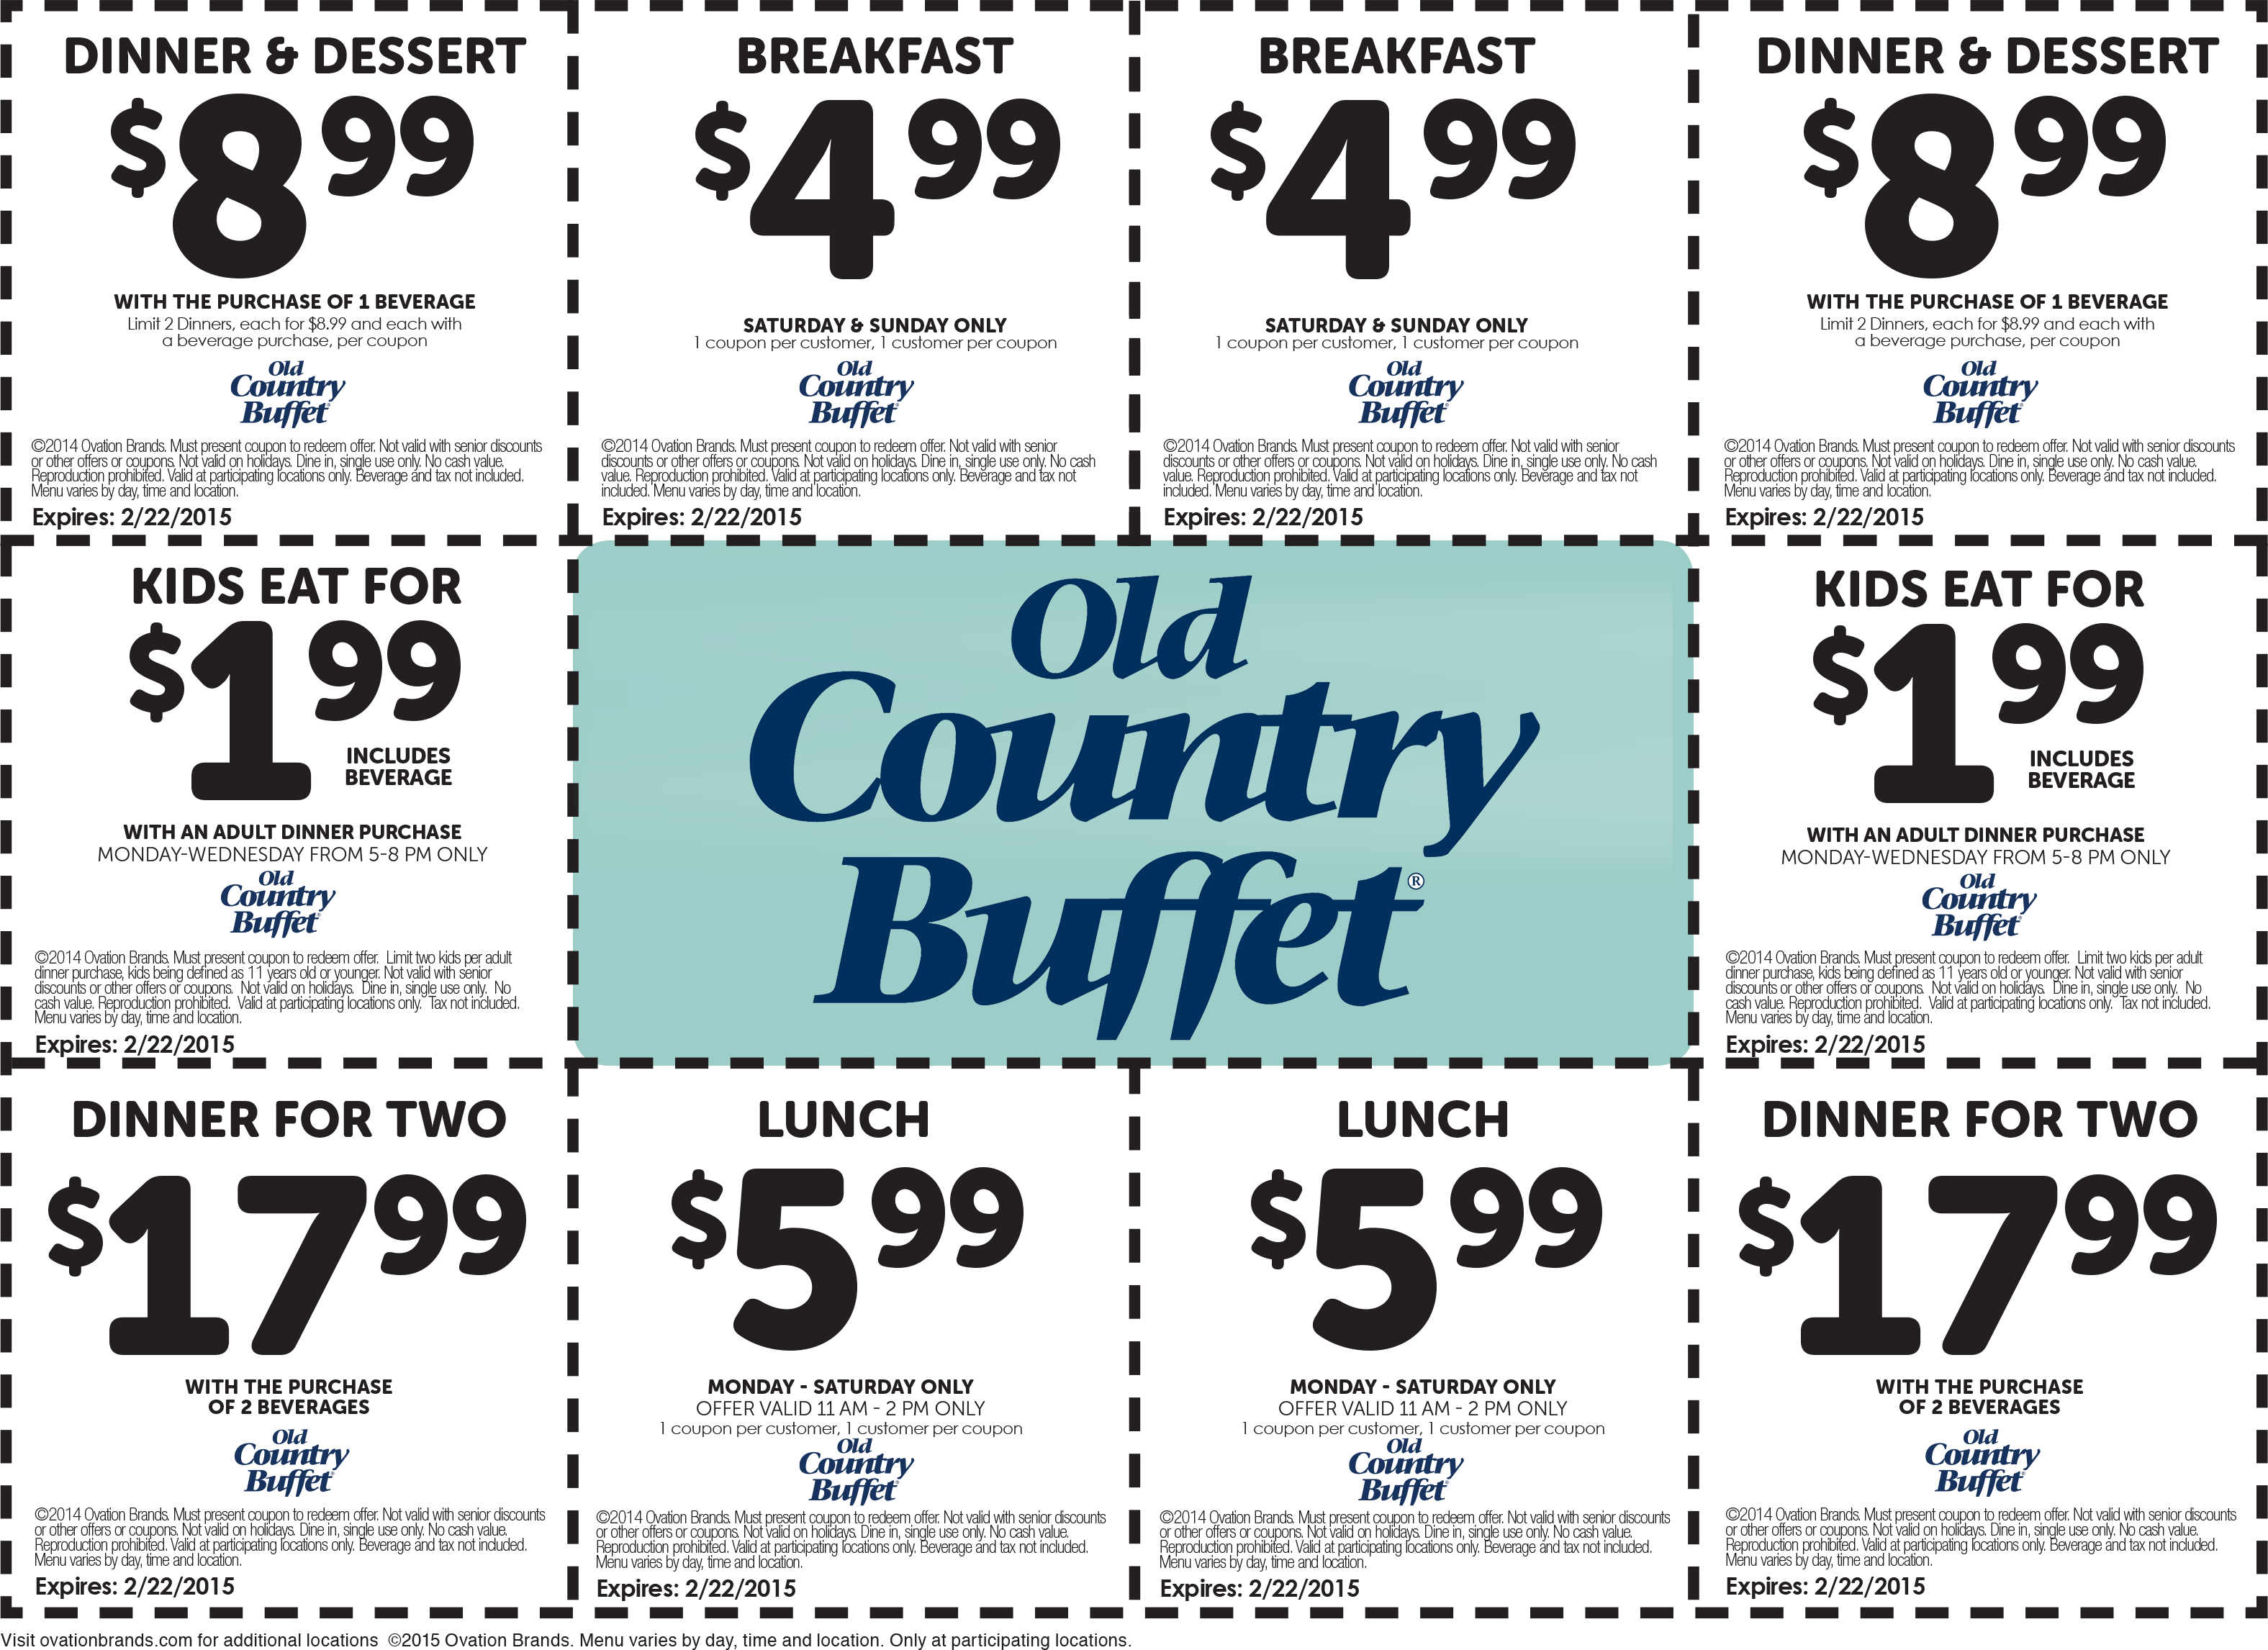 Old Country Buffet Coupon April 2017 $2 kids, $5 breakfast, $6 lunch & more at Old Country Buffet